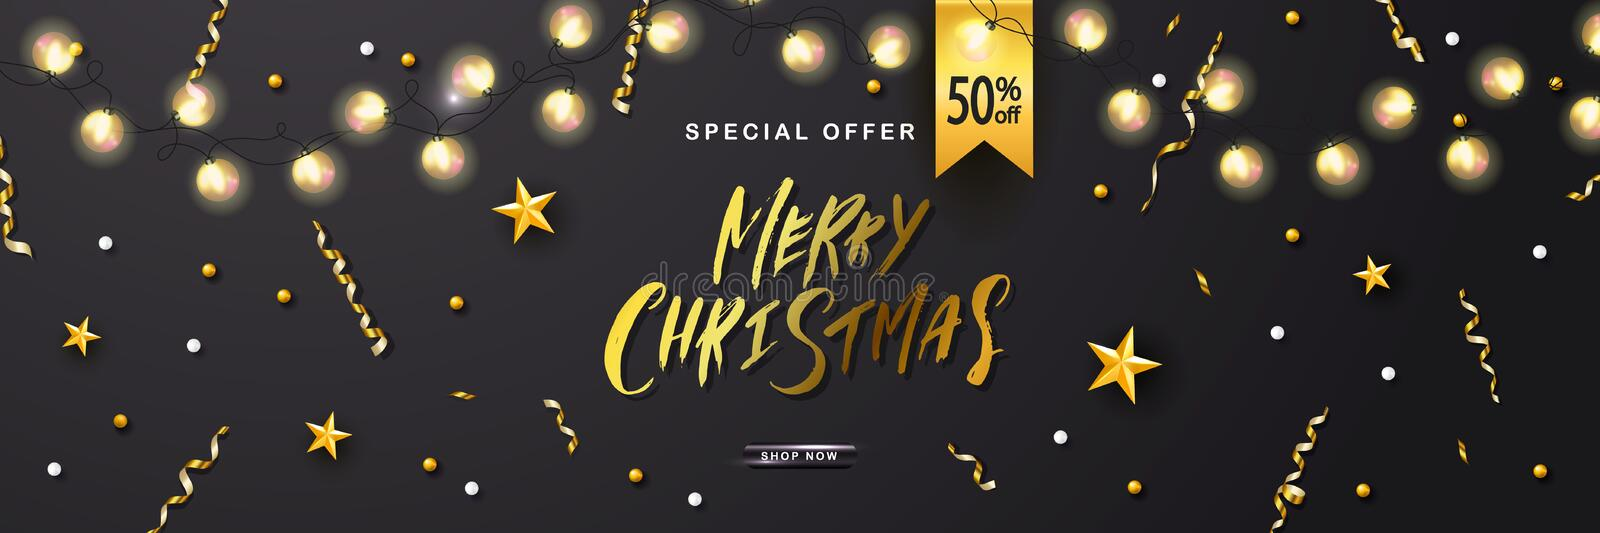 Merry Christmas Sale poster with luminous garlandsand shiny serpentine . Vector illustration. Design for invitation. Banners, ads, coupons, promotional stock illustration